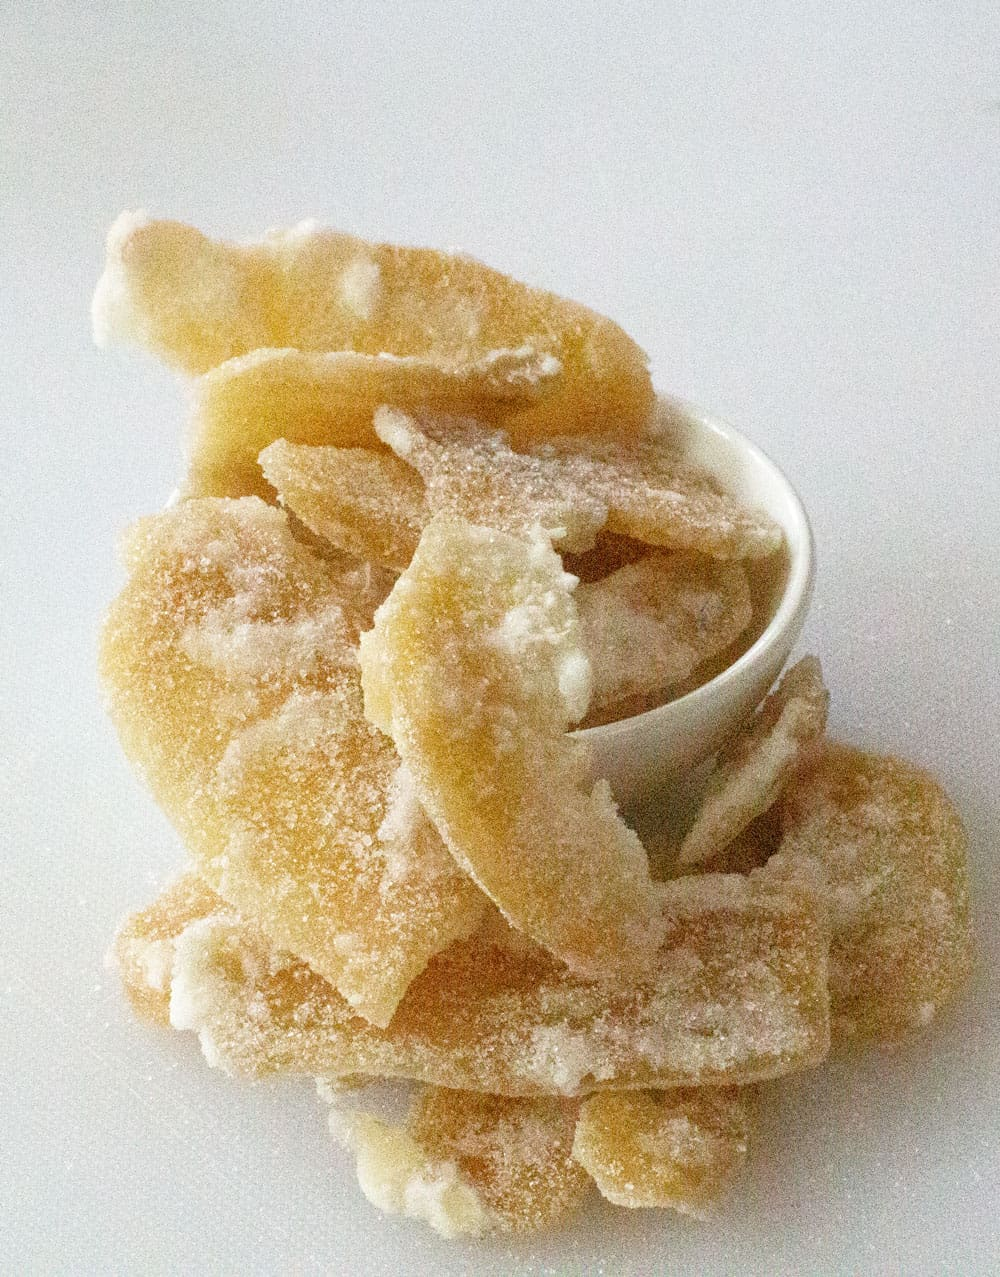 a pile of homemade crystallized ginger